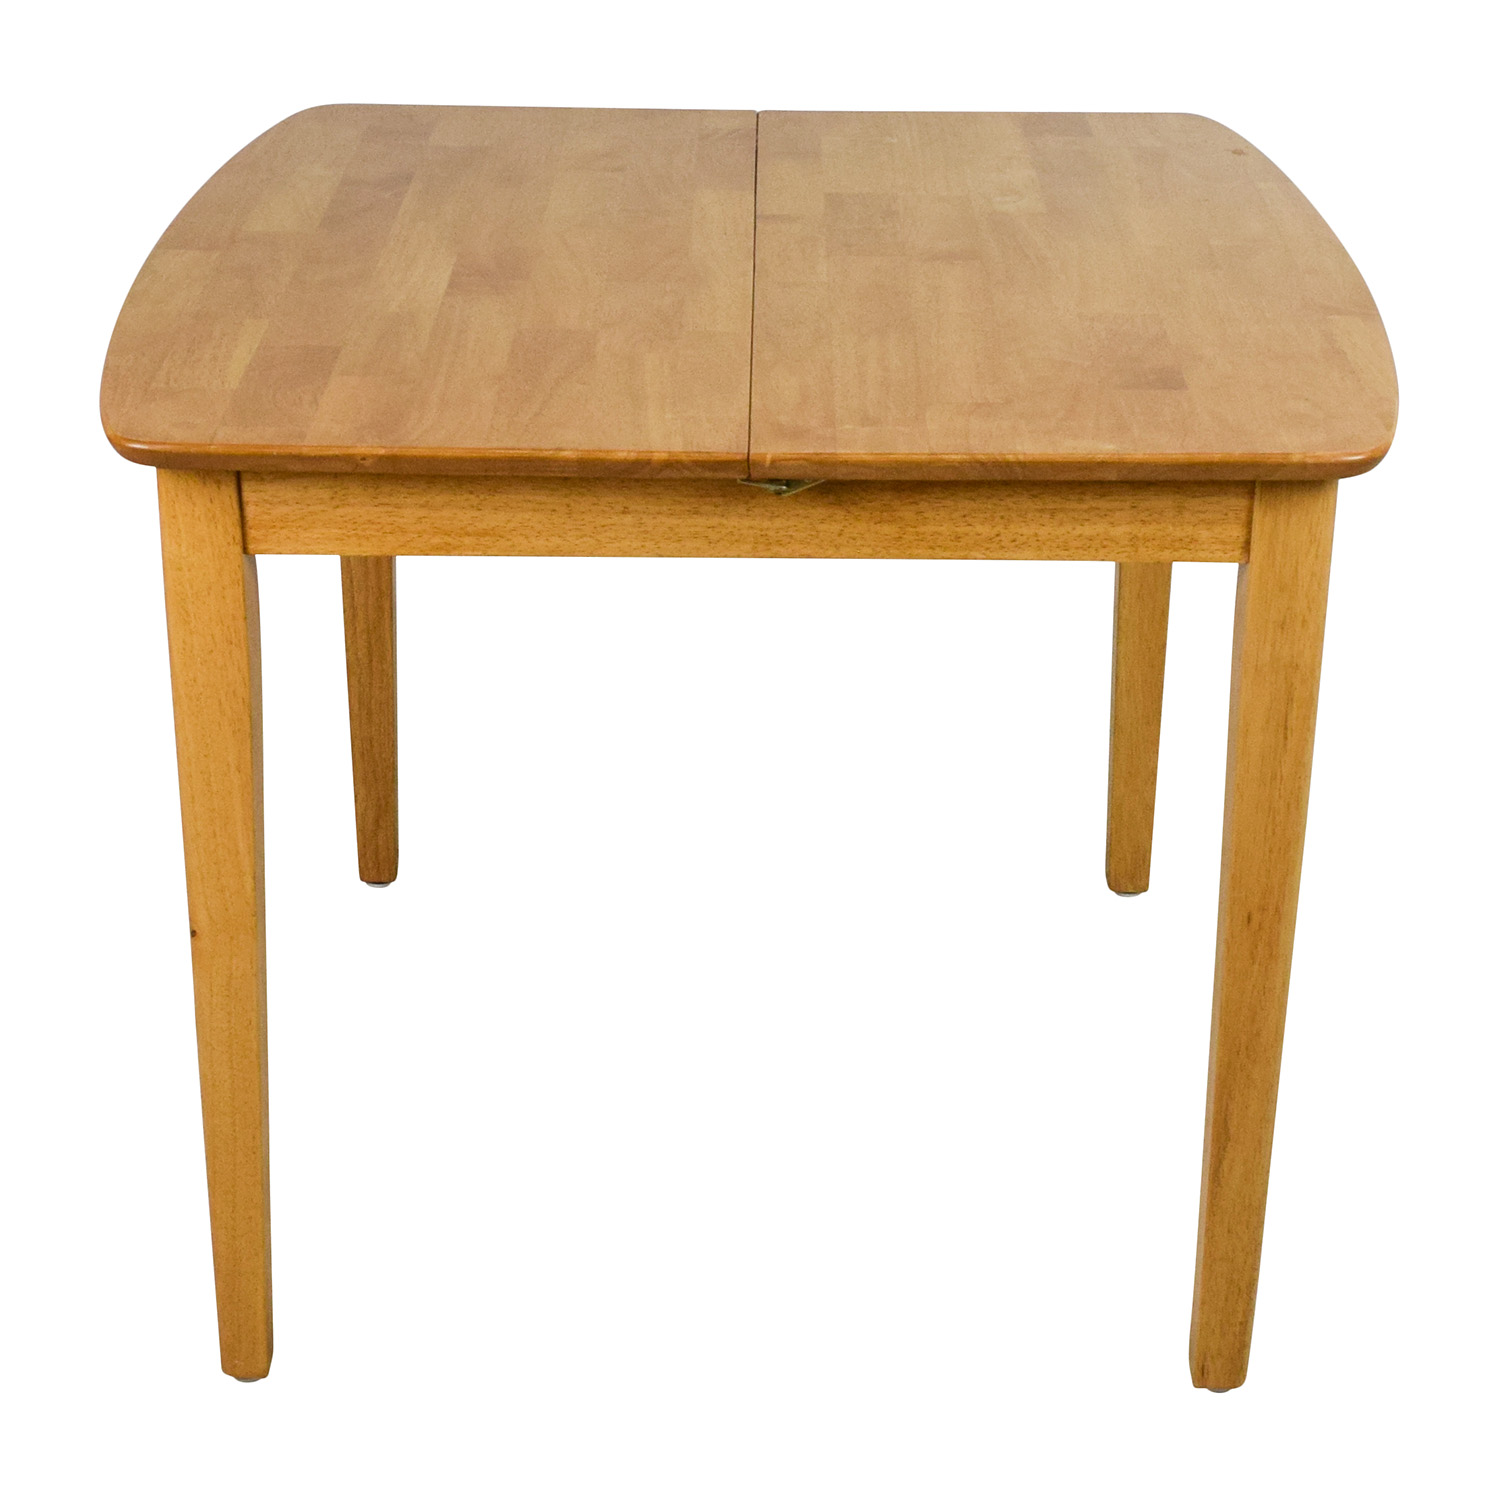 off unknown solid. Bench clipart wooden desk